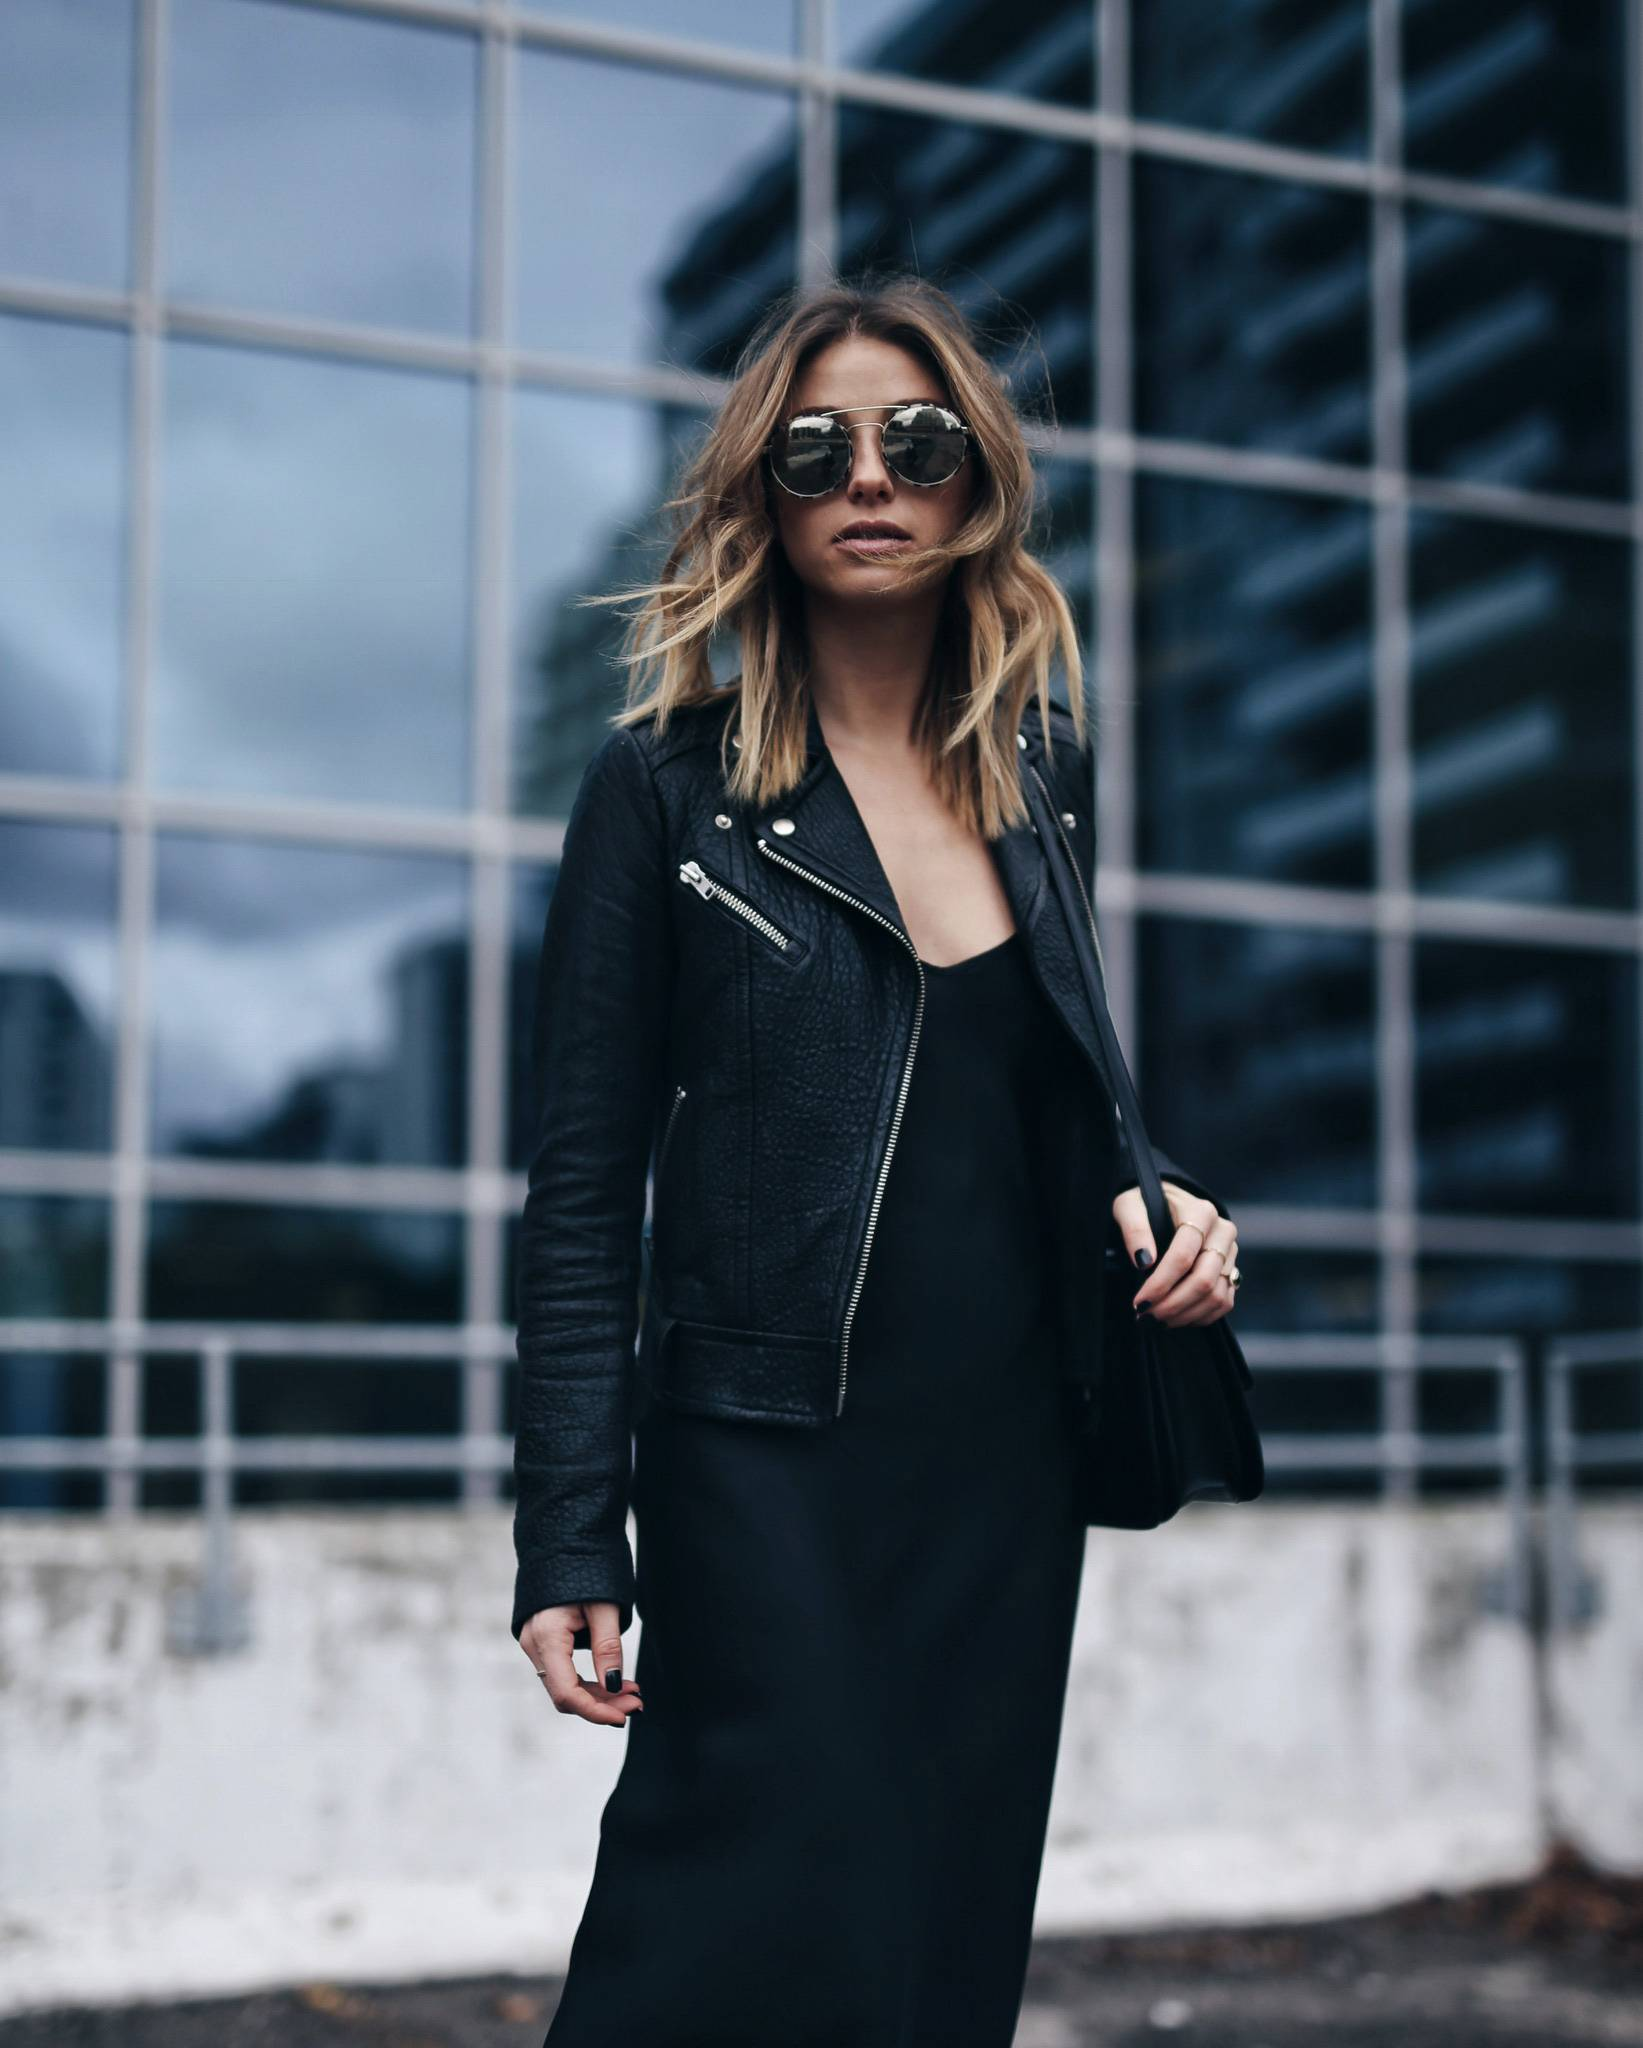 style-and-beauty-blogger-jill-lansky-of-the-august-diaries-in-a-mackage-rumer-leather-jacket-and-organic-by-john-patrick-slip-dress